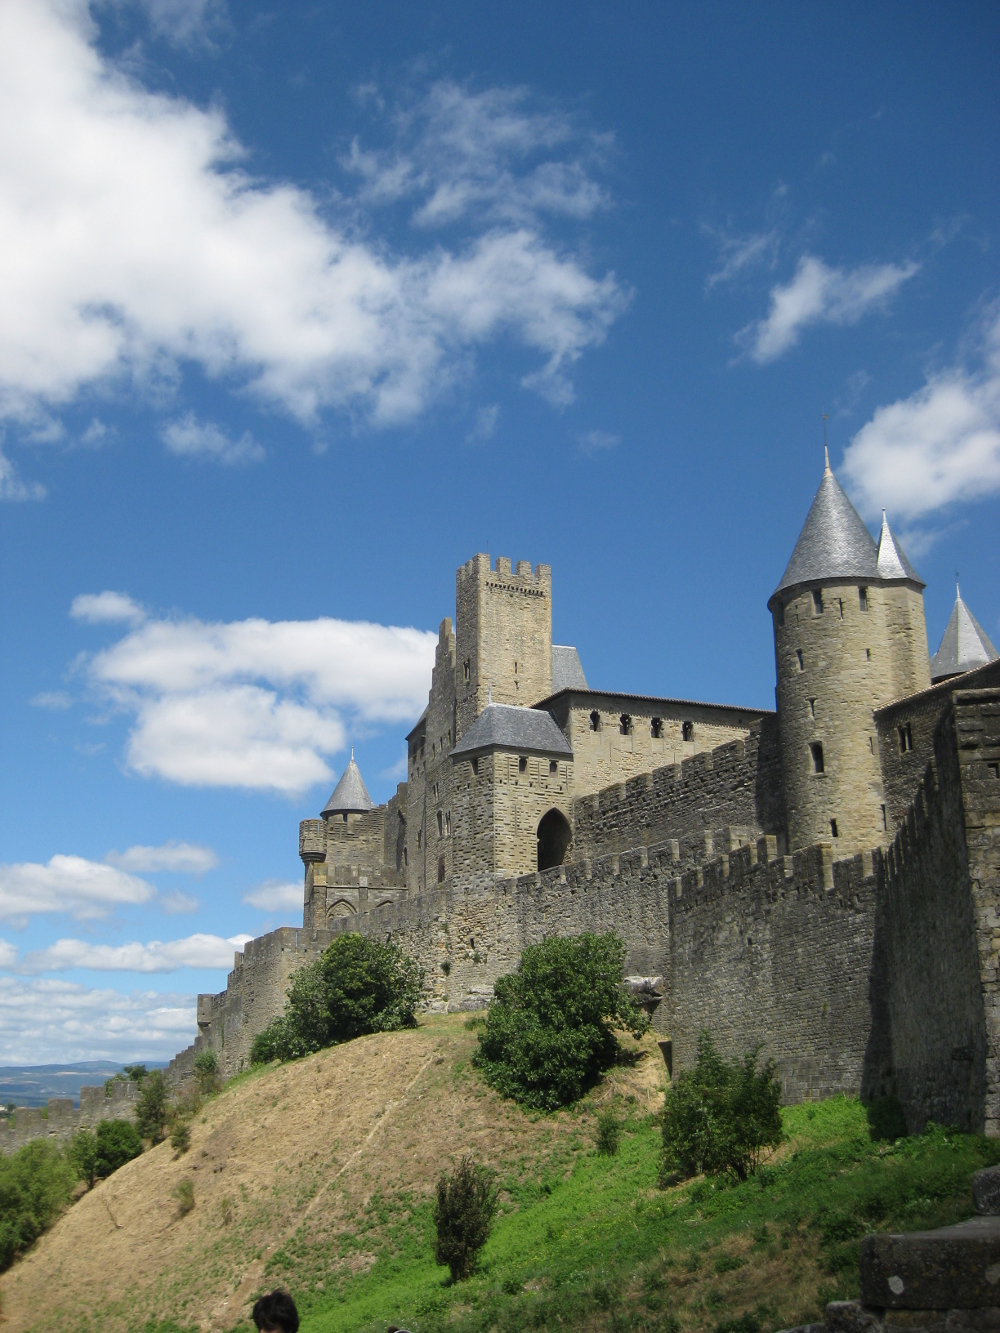 The fortified walls of the medieval city of Carcassonne, France